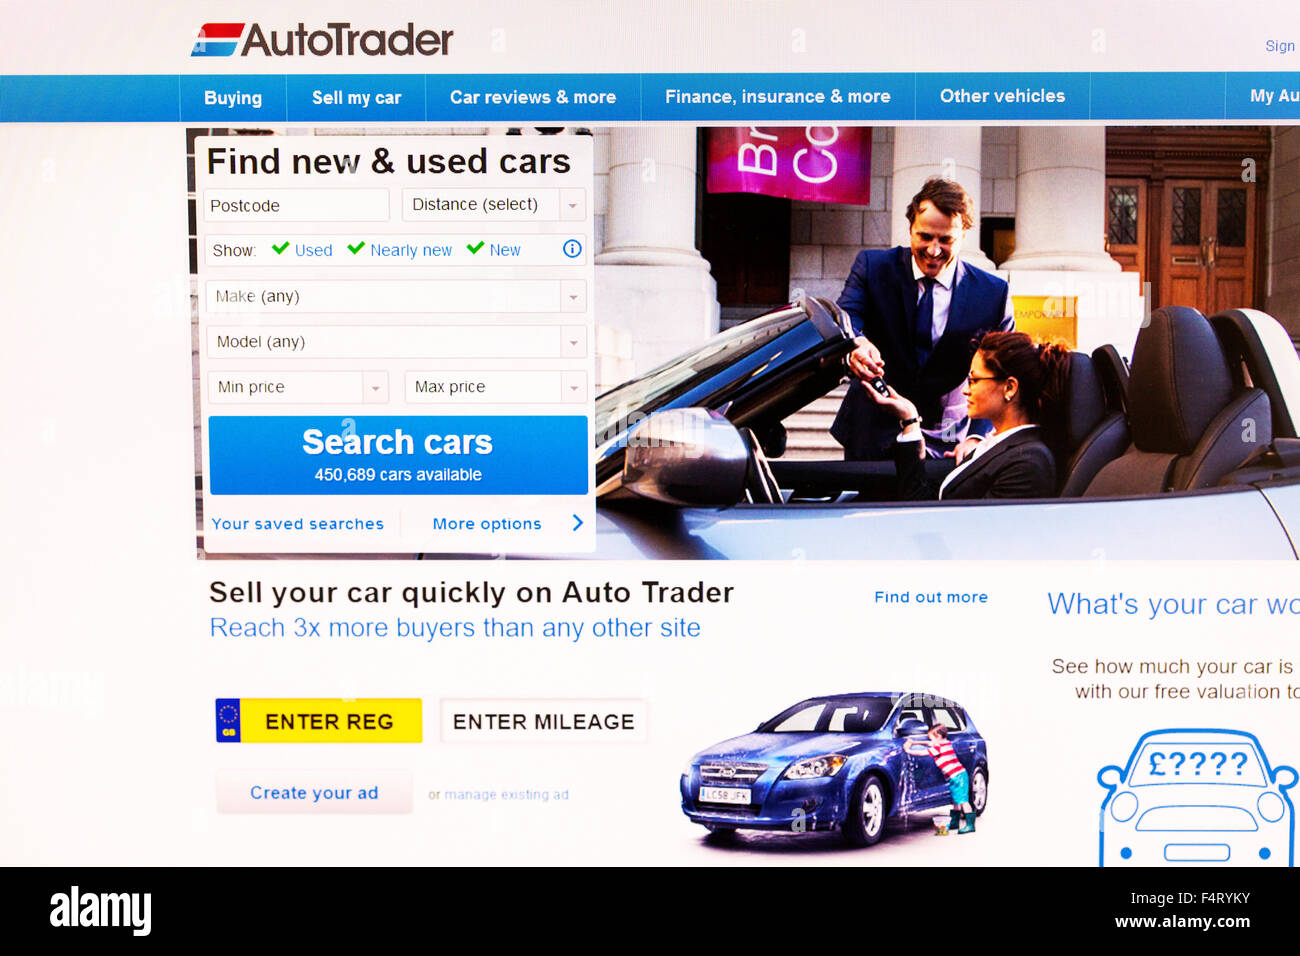 Wonderful Used Auto Trader Cars For Sale Images - Classic Cars Ideas ...